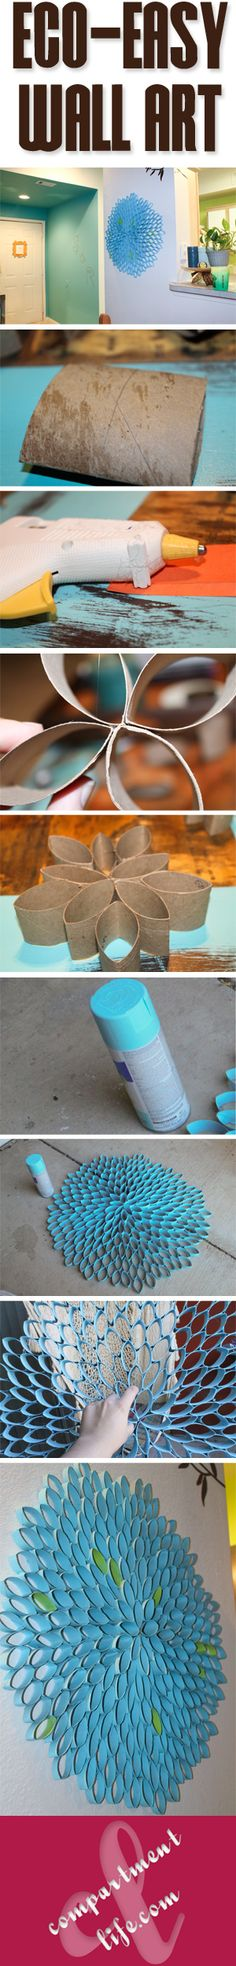 DIY Paper Roll Wall Art diy craft crafts craft ideas reuse easy crafts diy ideas diy crafts easy diy home crafts recycle repurpose Cute Crafts, Crafts To Do, Arts And Crafts, Diy Crafts, Do It Yourself Upcycling, Paper Roll Crafts, Diy Paper, Tissue Paper, Art Diy